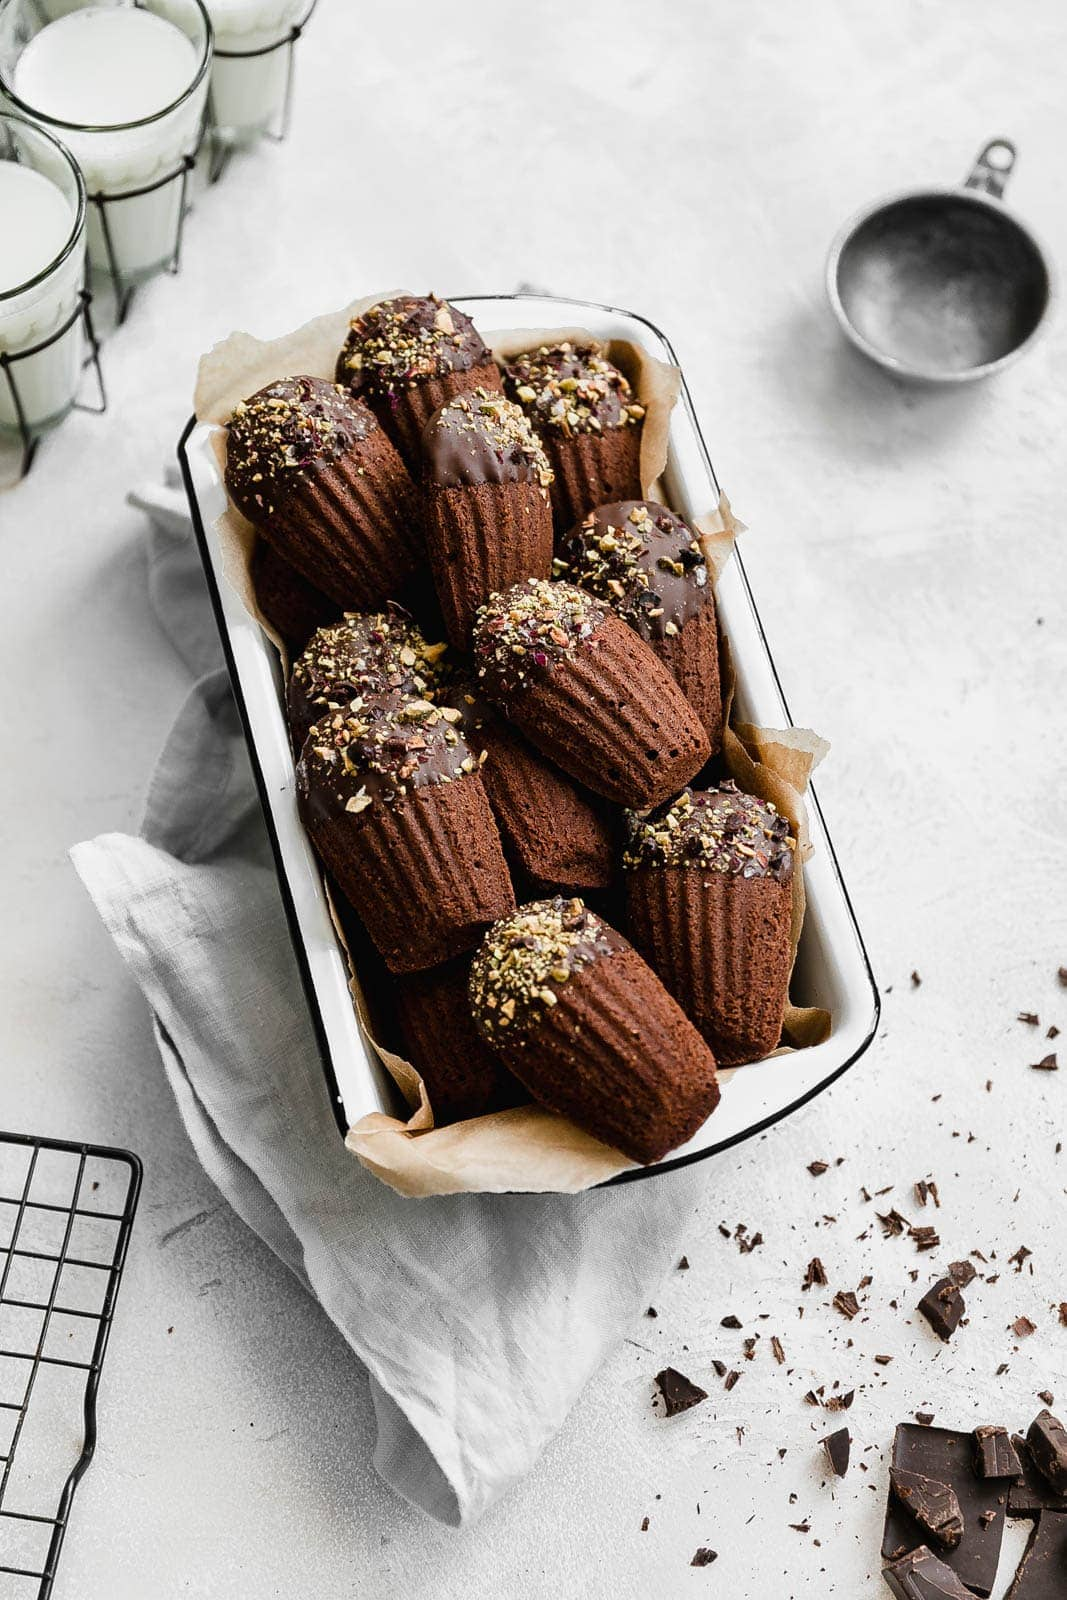 Chocolate Dipped Chocolate Madeleines Broma Bakery